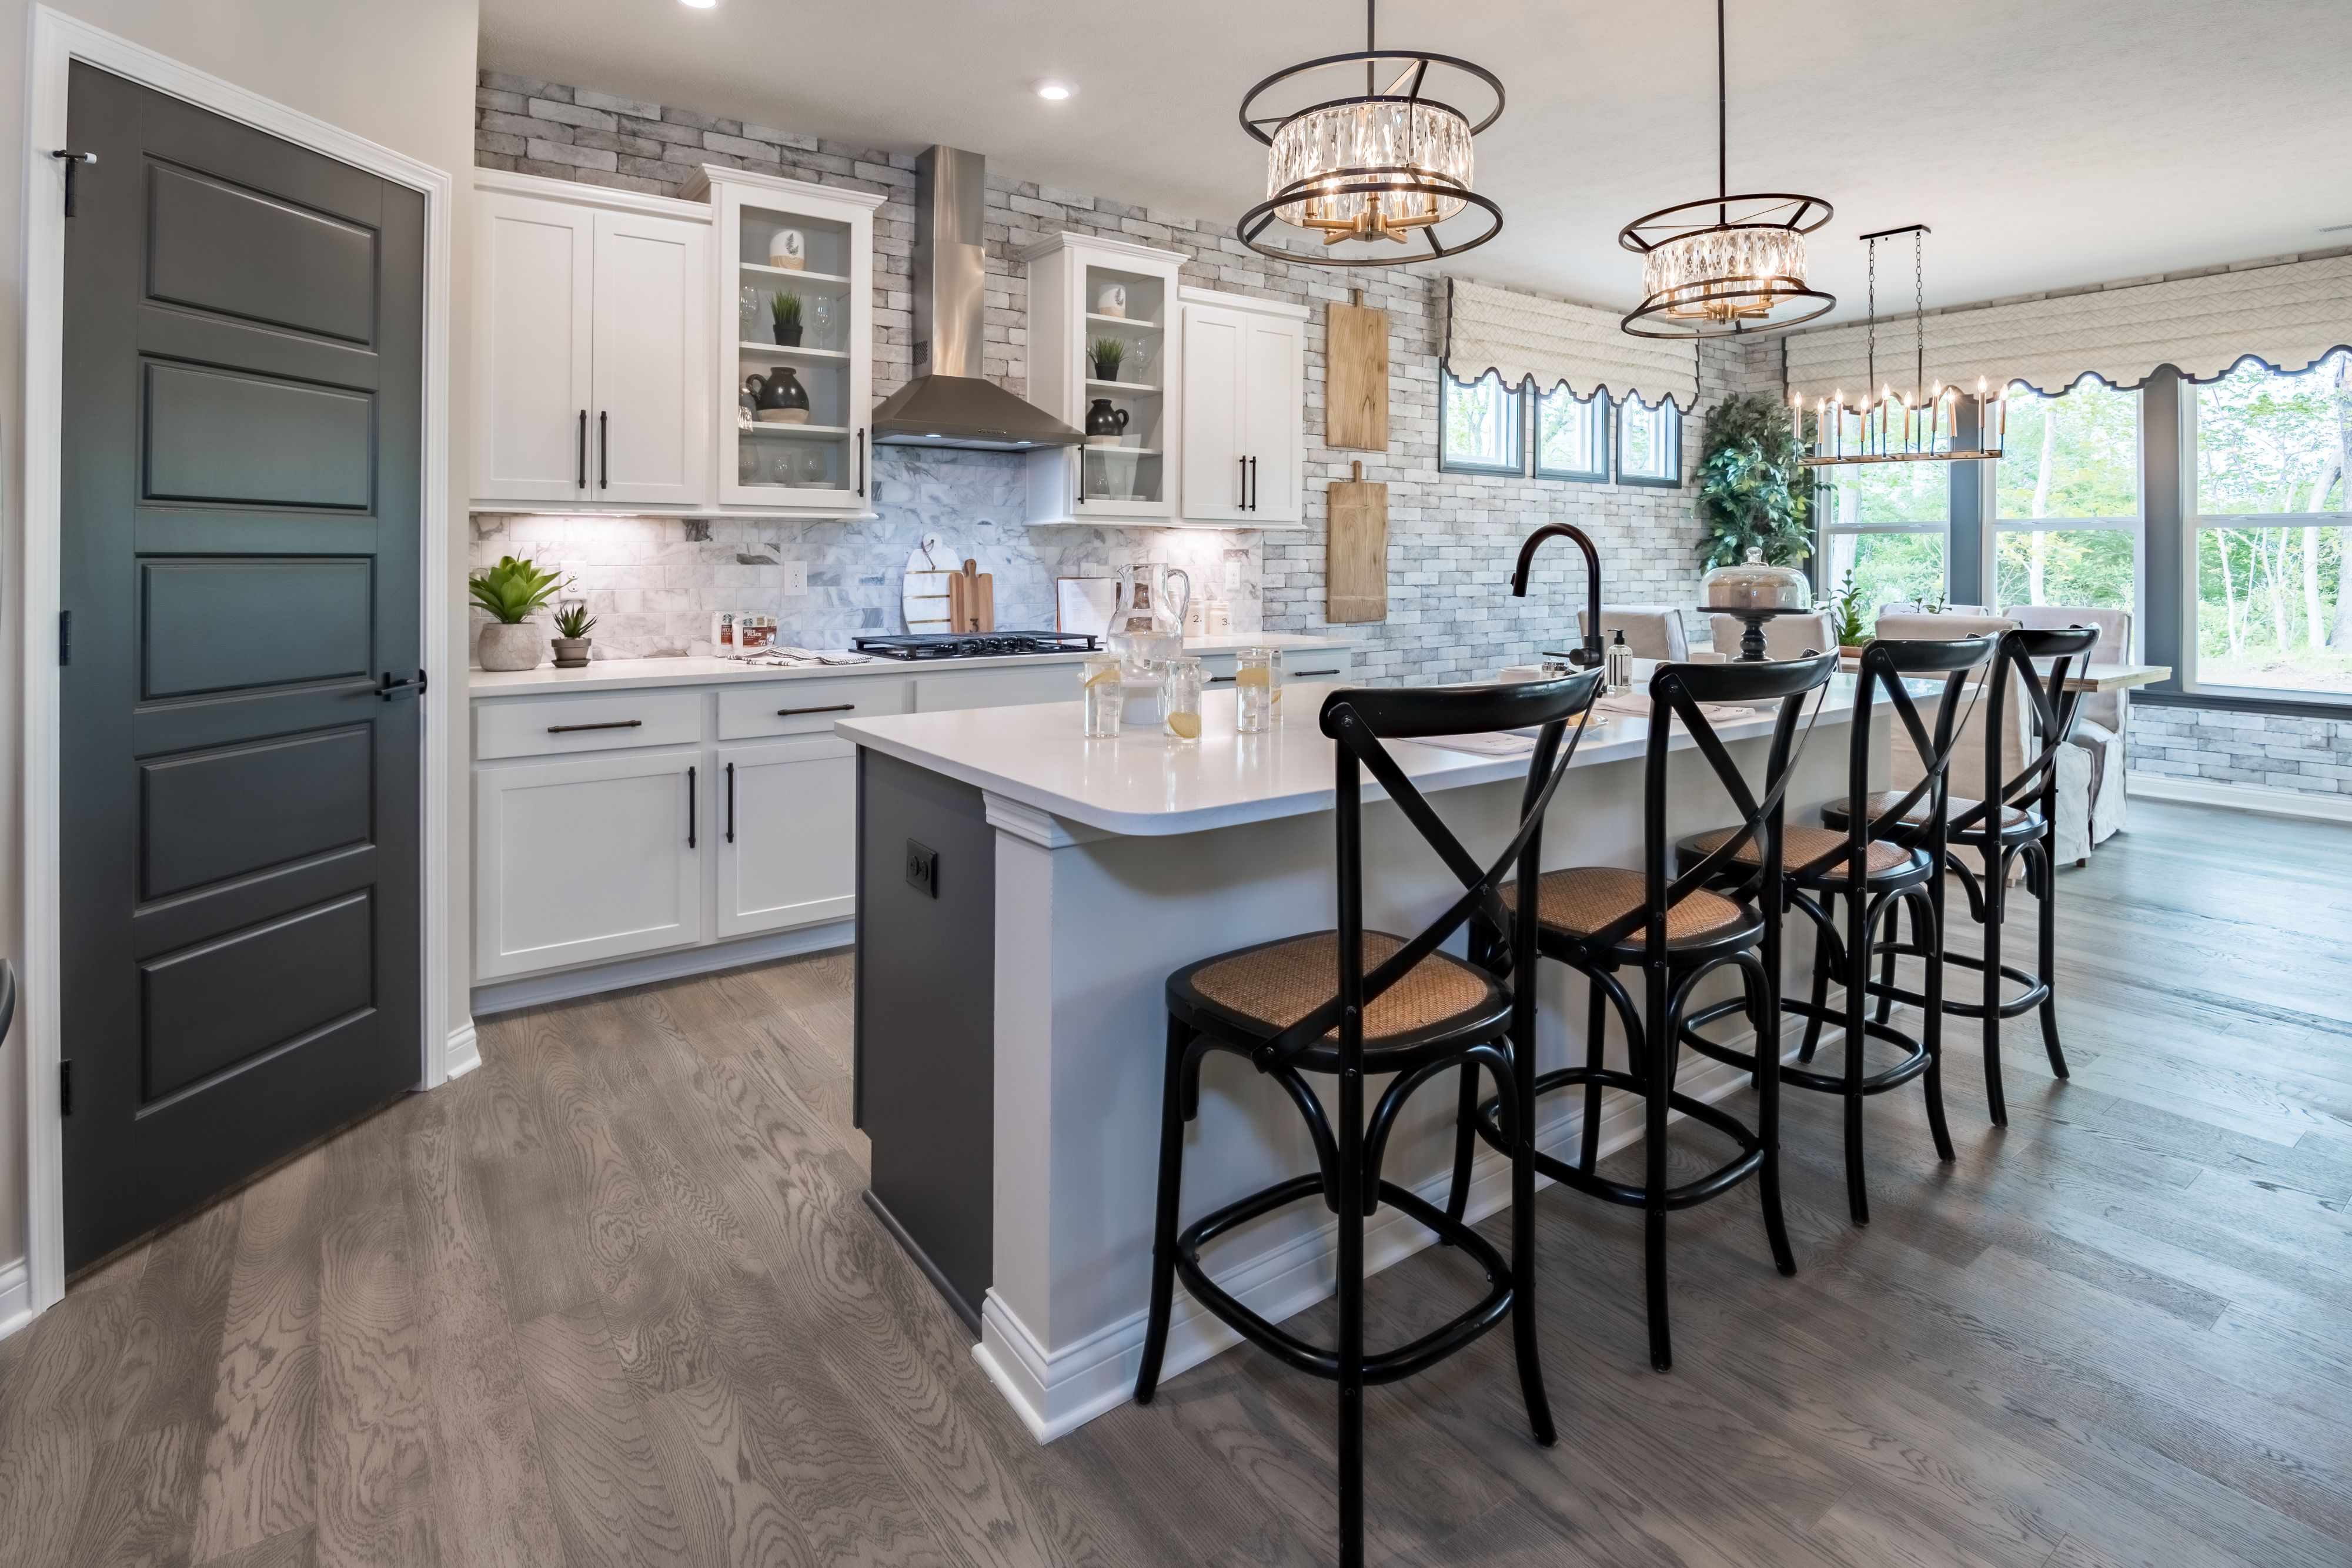 Kitchen featured in the Maxwell By Fischer Homes  in Cincinnati, OH